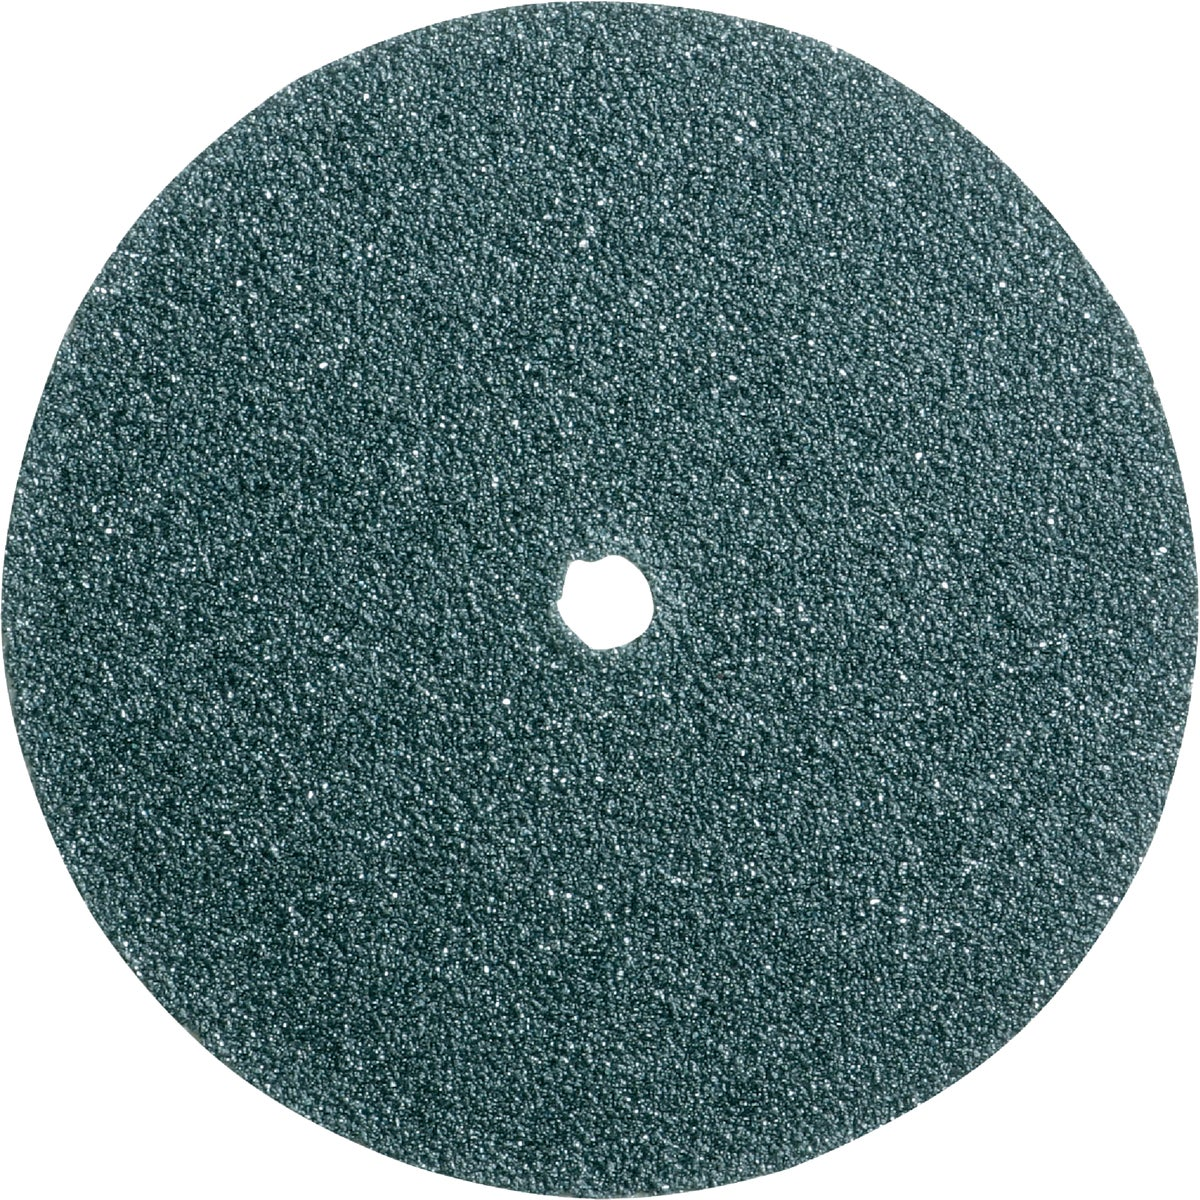 MEDIUM SANDING DISC - 412 by Dremel Mfg Co